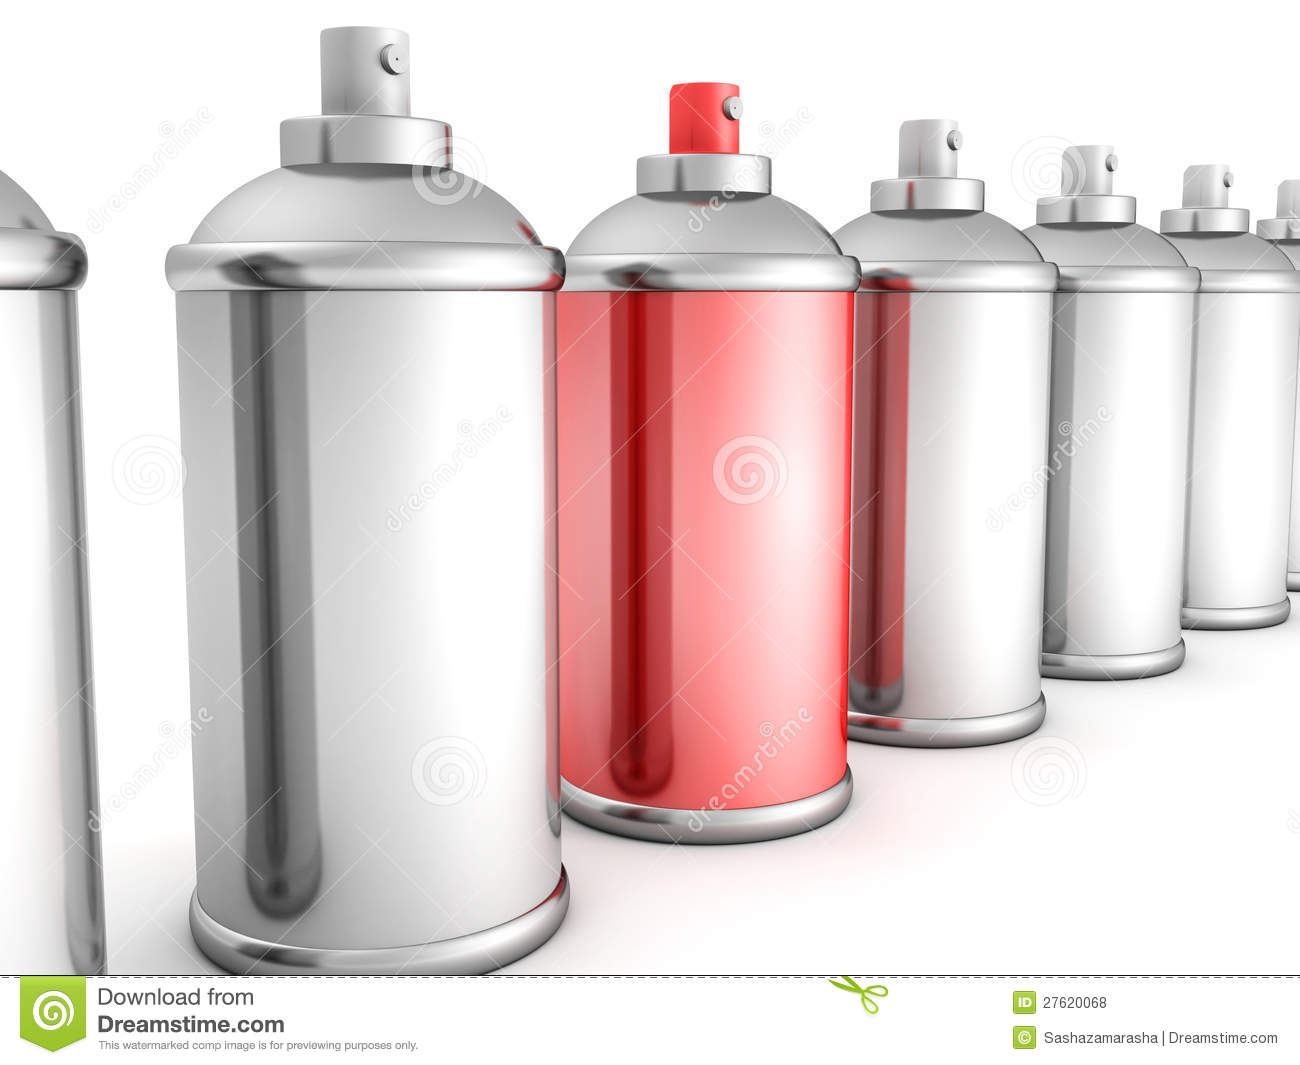 Red Spray Paint Bottle Can In White Crowd Royalty Free Stock Photos Image 27620068